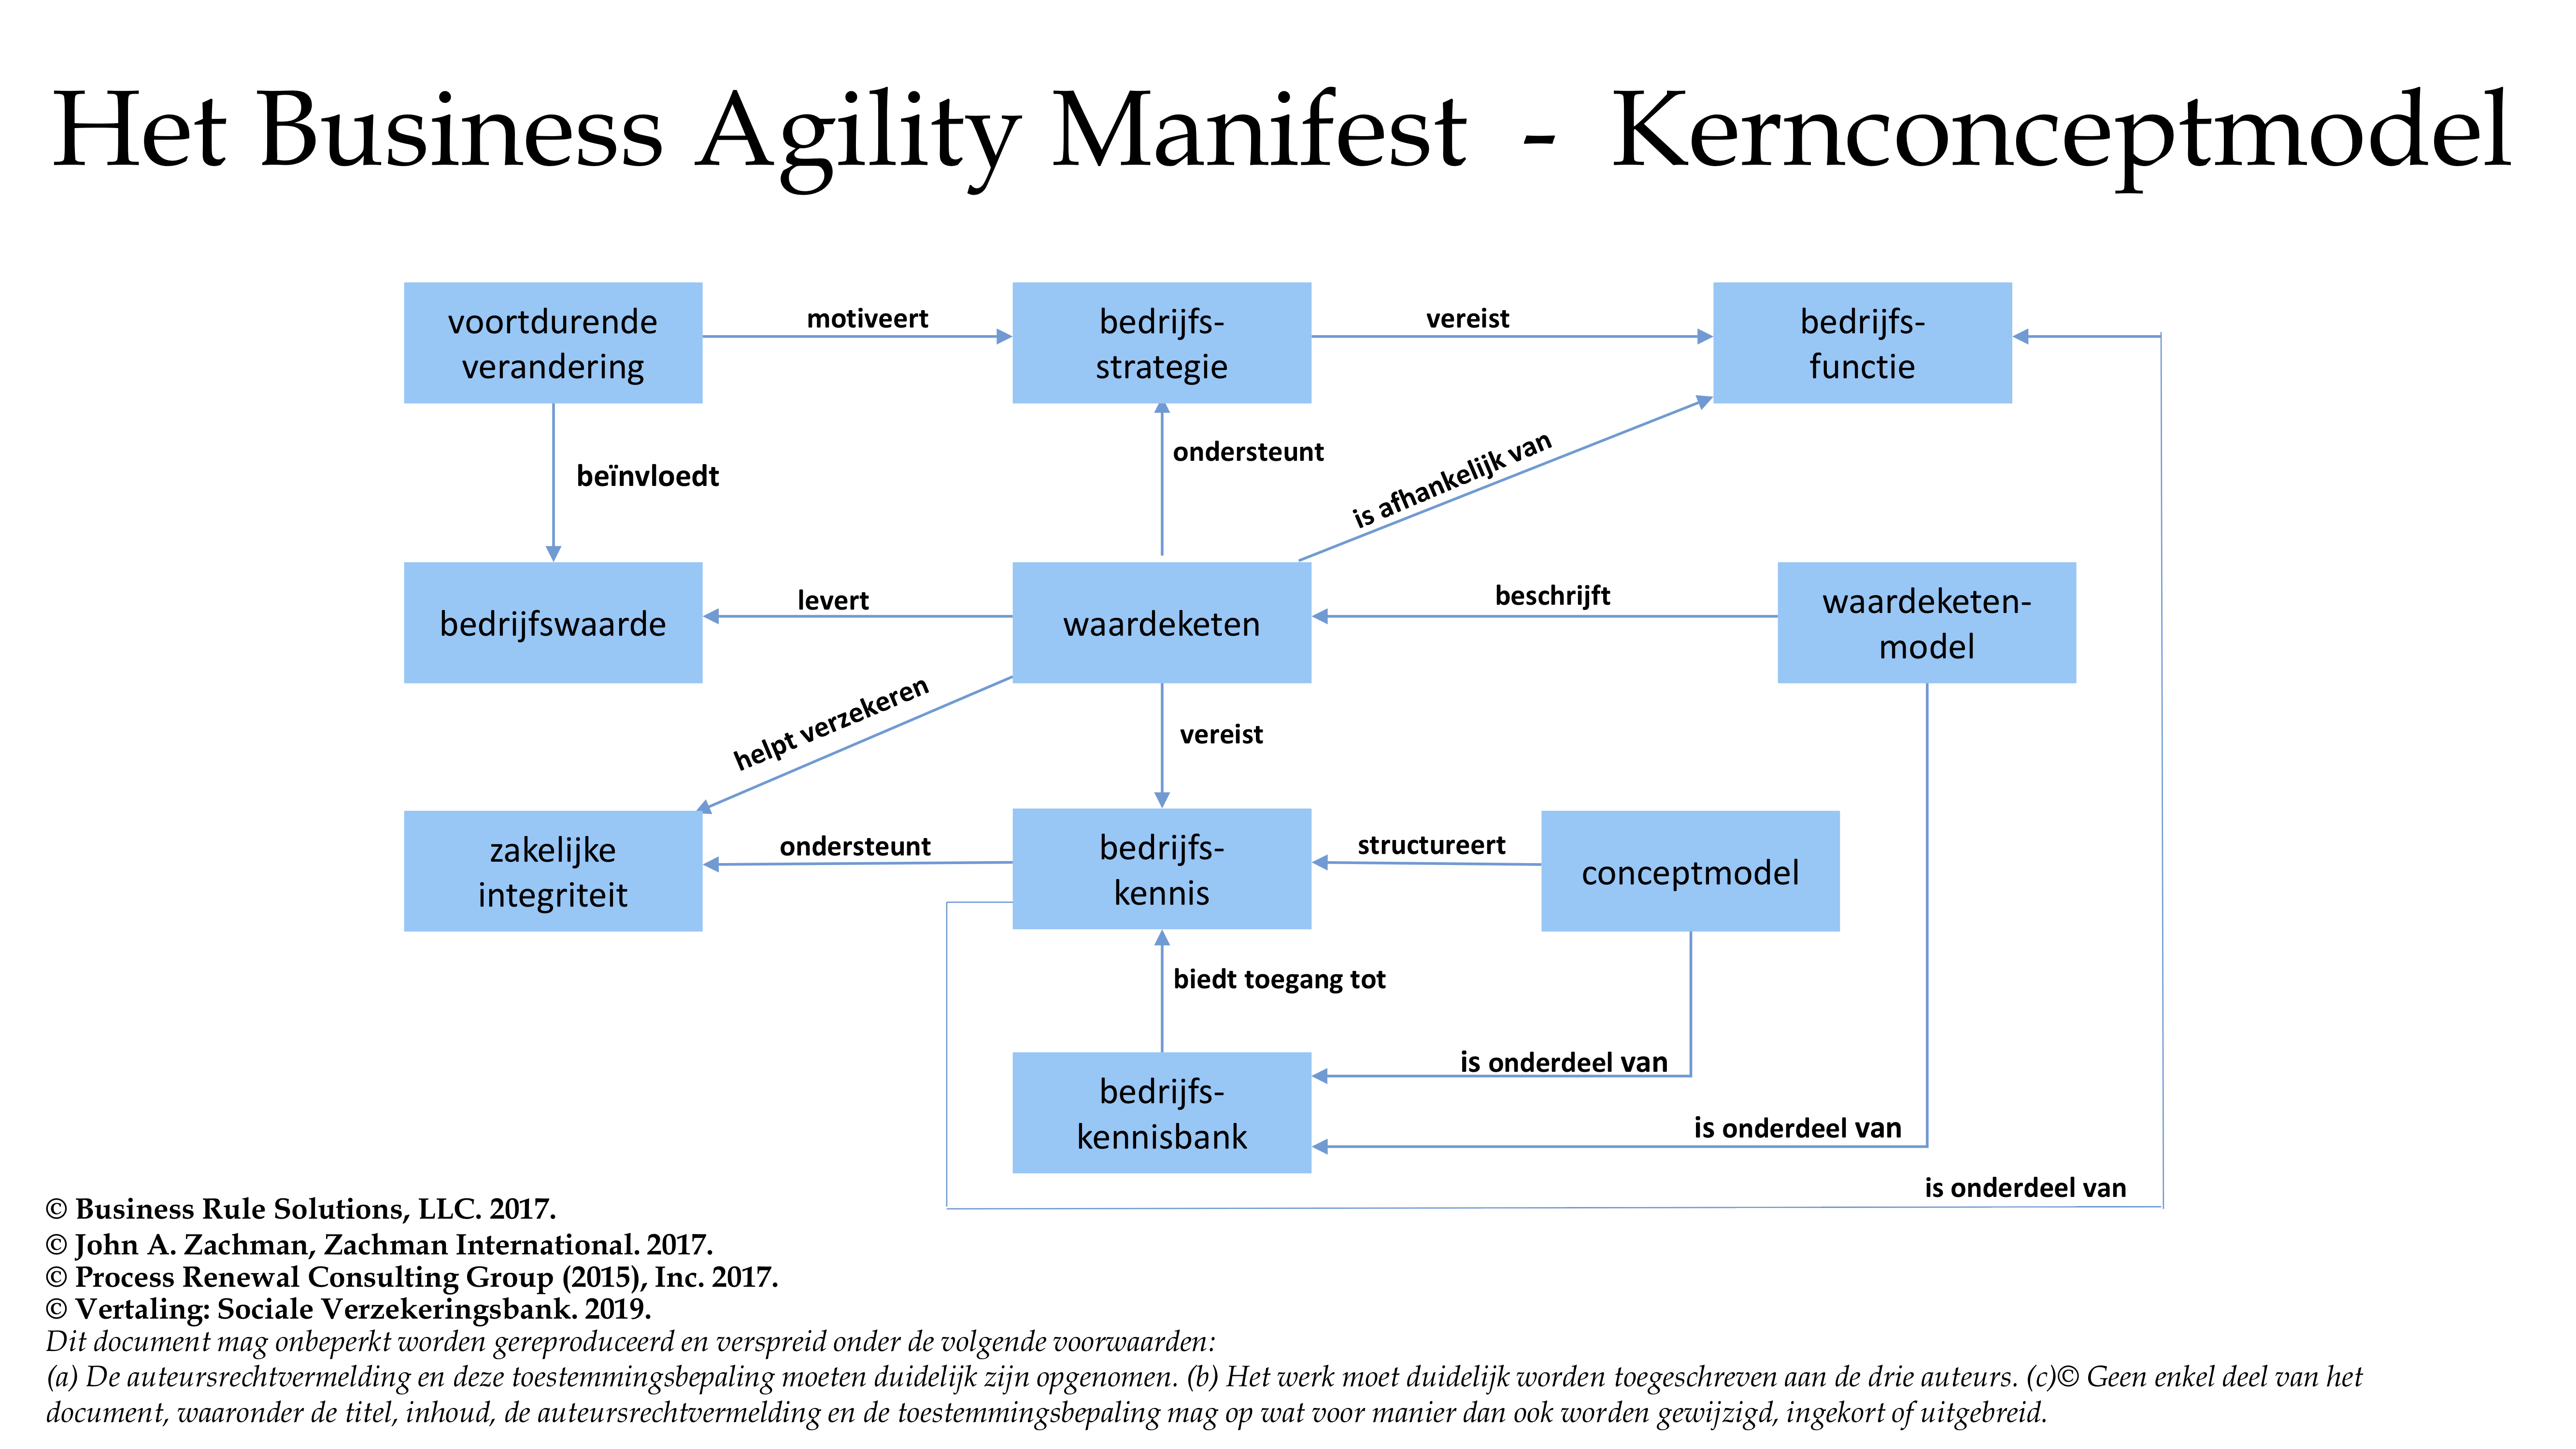 Conceptmodel Business Agility Manifesto NL 2019 11 02 final Title Case